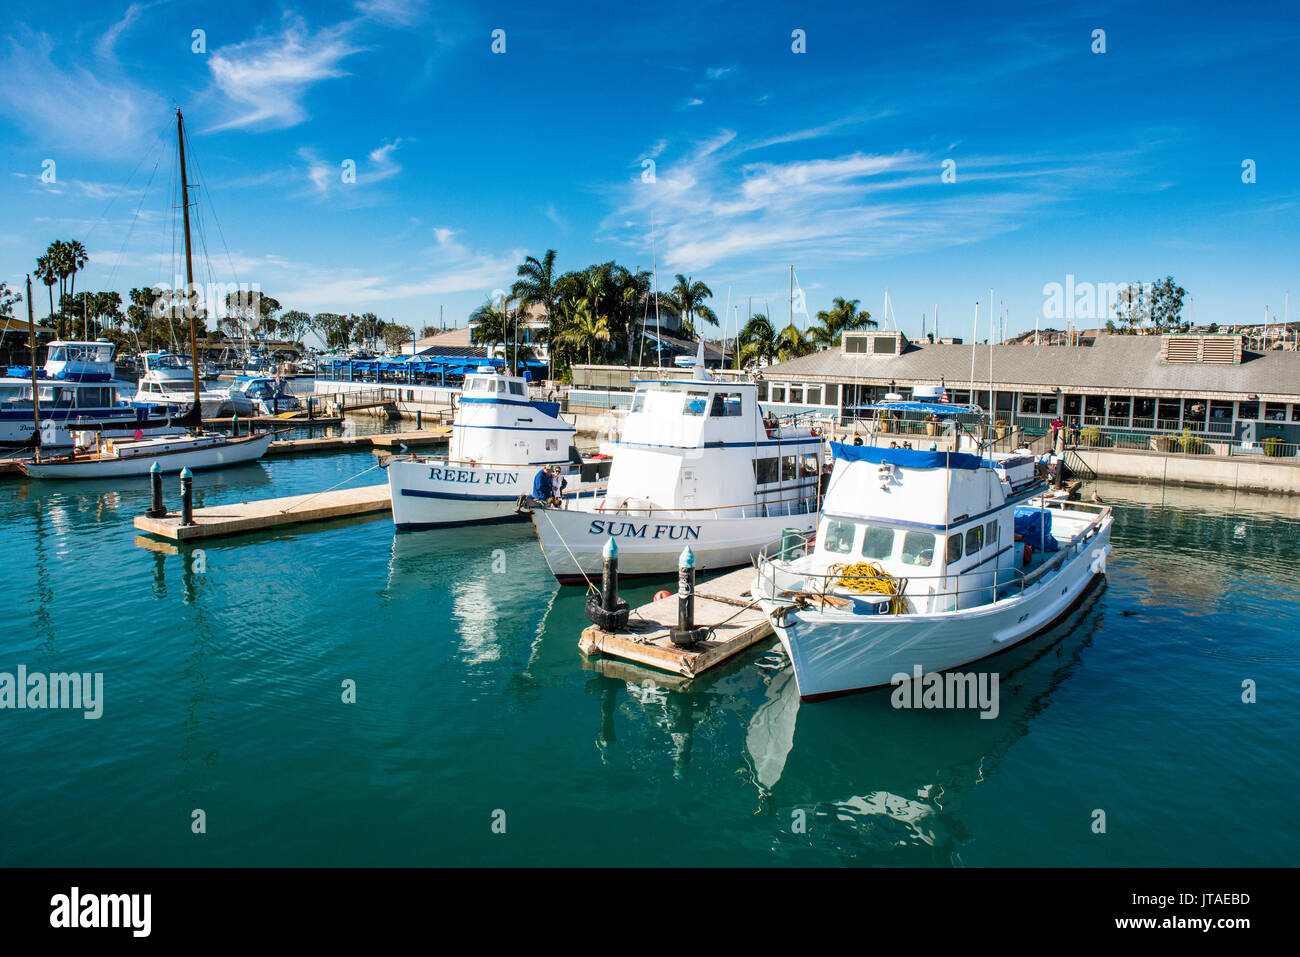 Harbour of Dana Point, ferry point to Santa Catalina Island, California, United States of America, North America - Stock Image